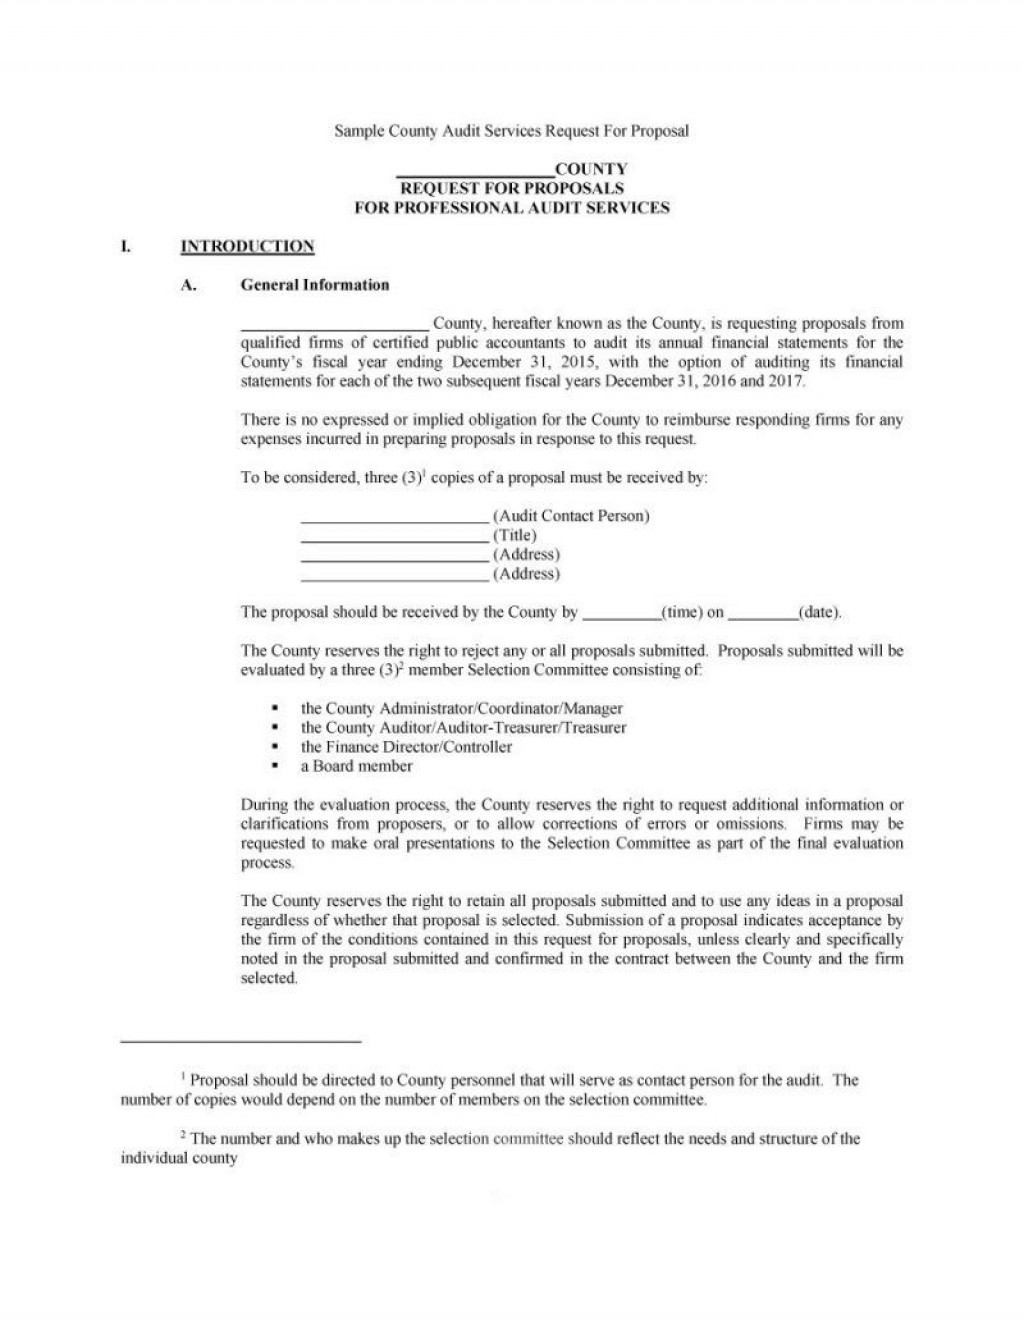 005 Outstanding Request For Proposal Rfp Template Construction Highest Quality Large